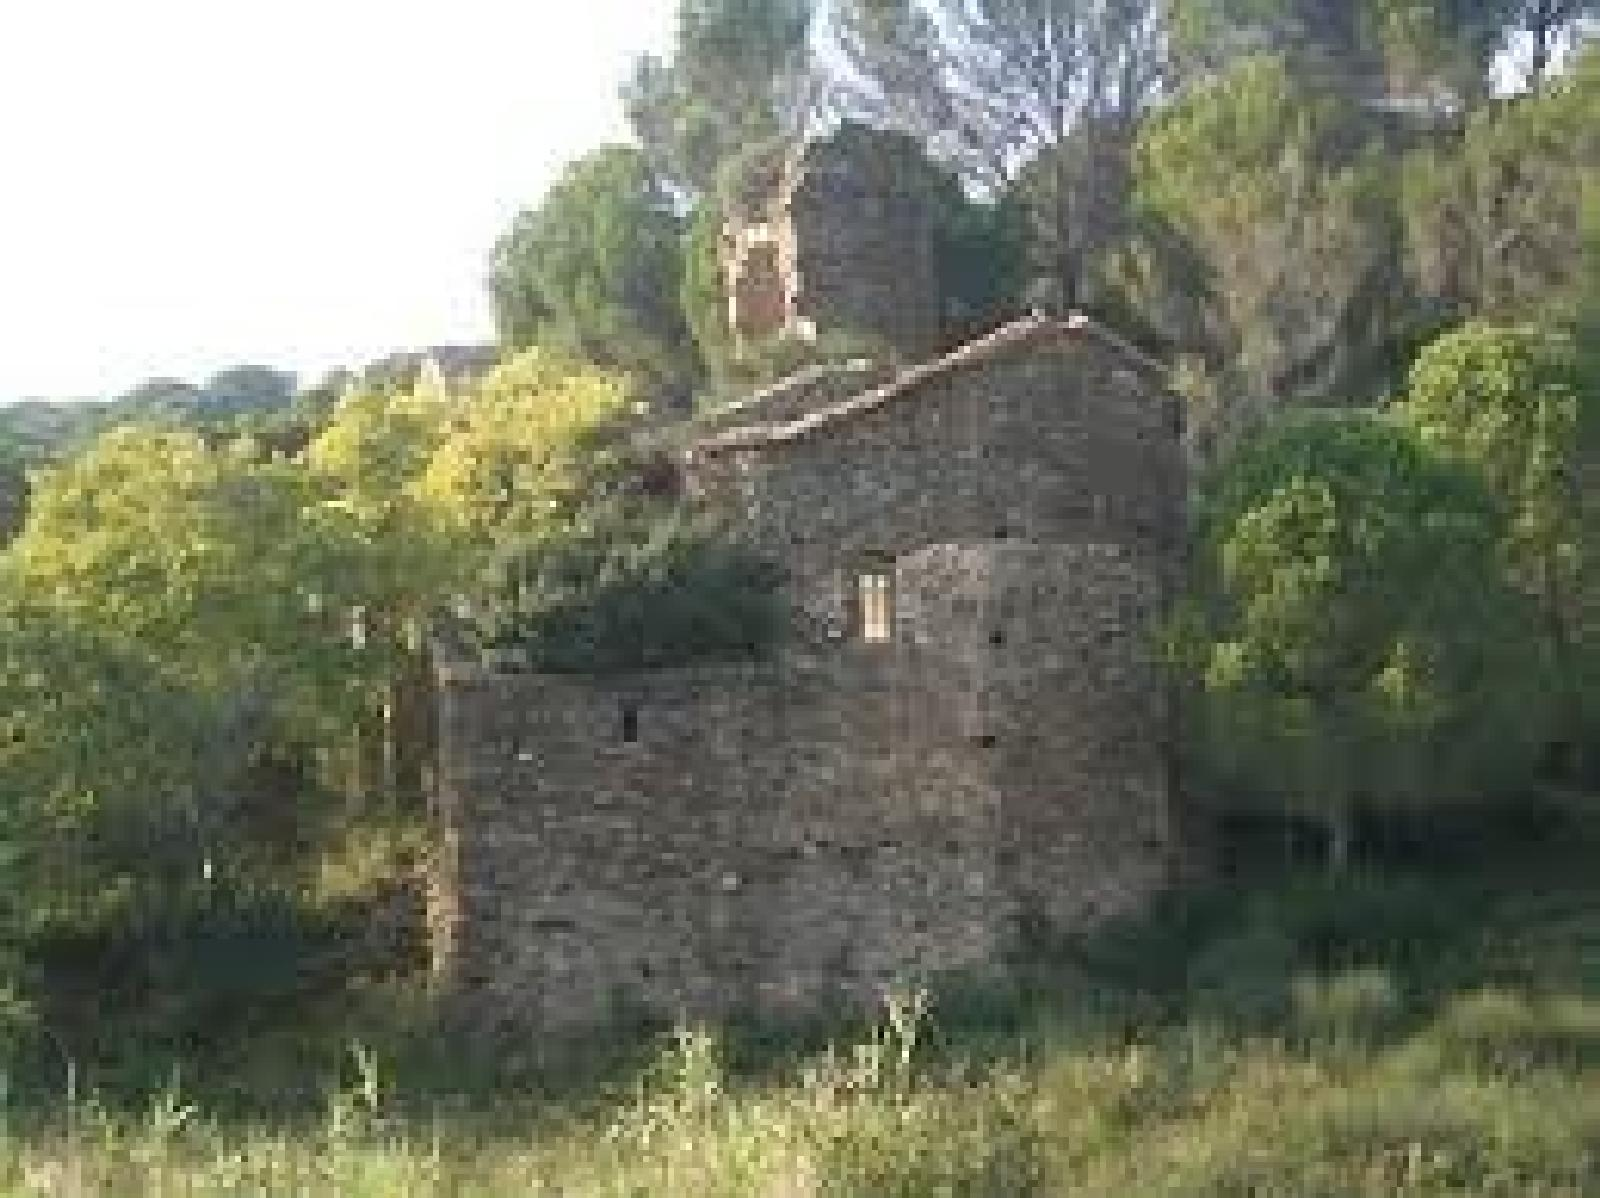 Photo of Capella/Coll de Can Baldiri